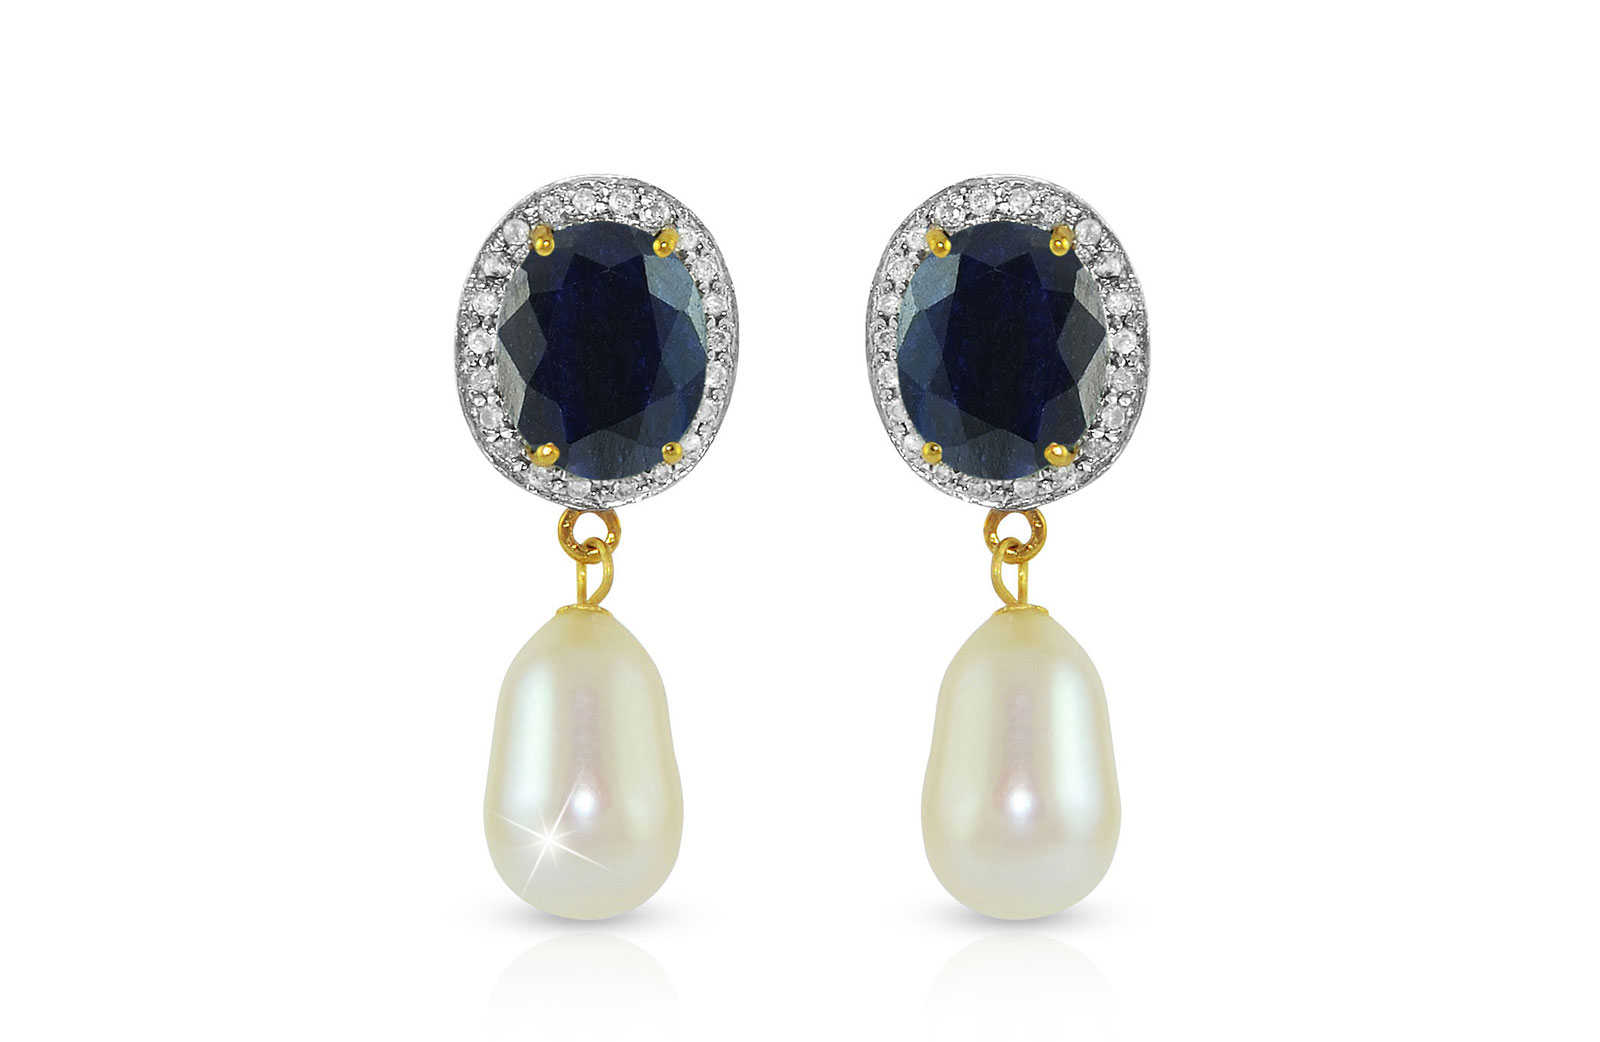 Vera Perla 18K Gold 0.24ct. Diamonds, Oval Sapphire & Pearl Earrings